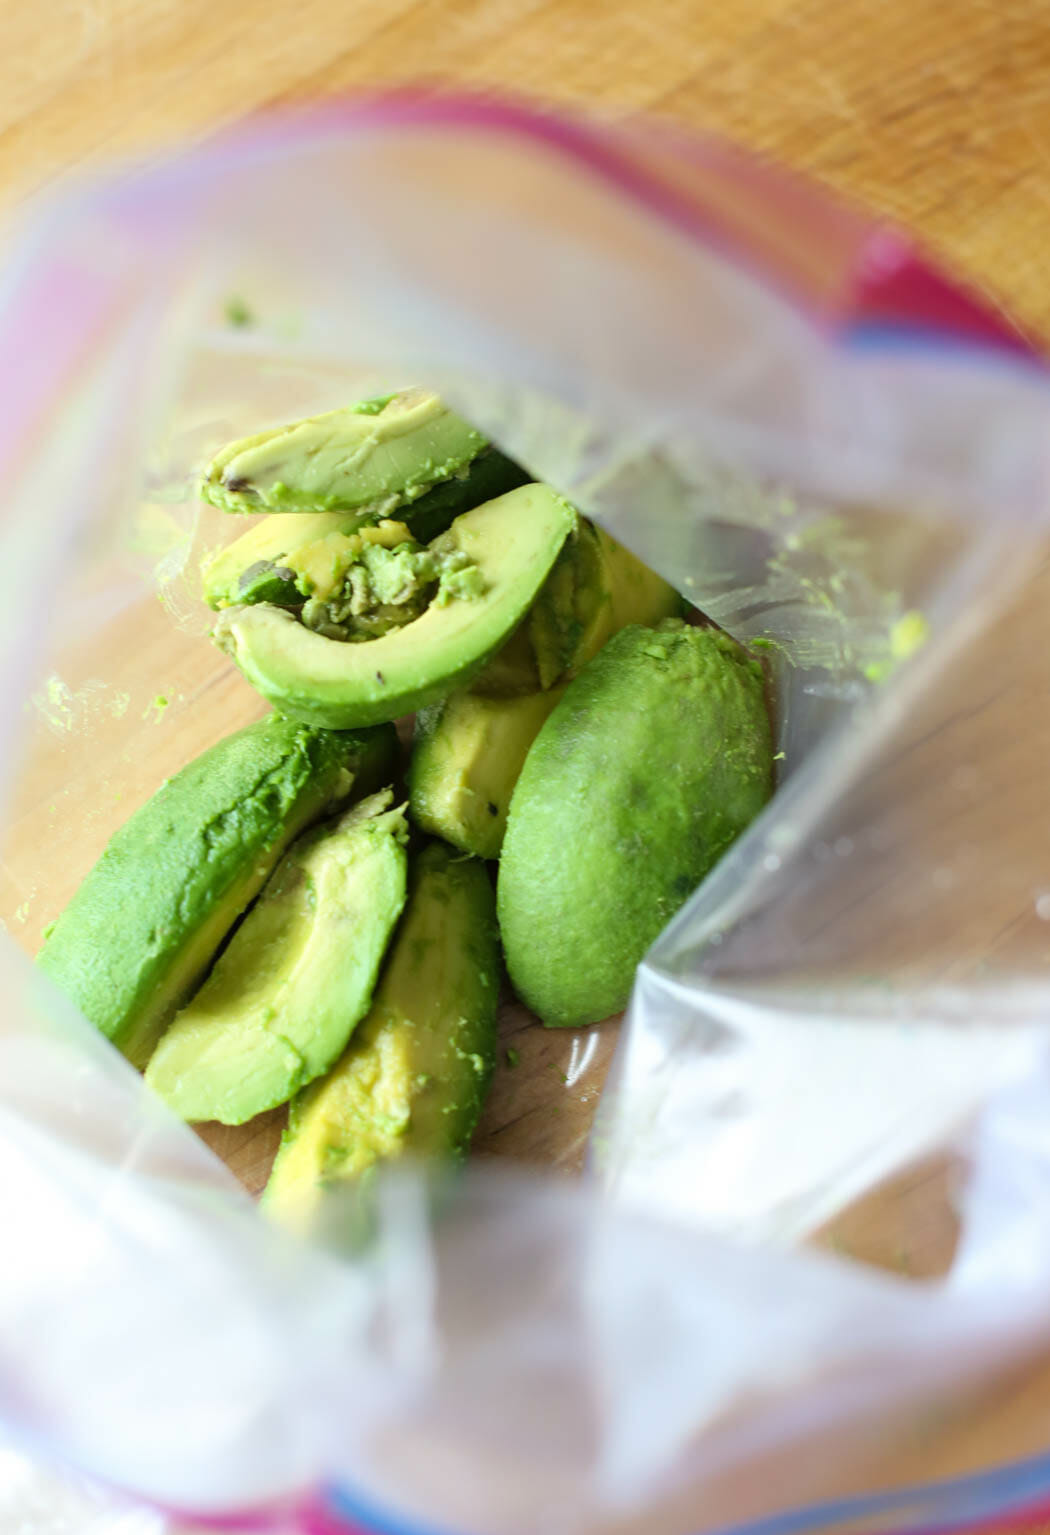 Avocados in Ziploc bag